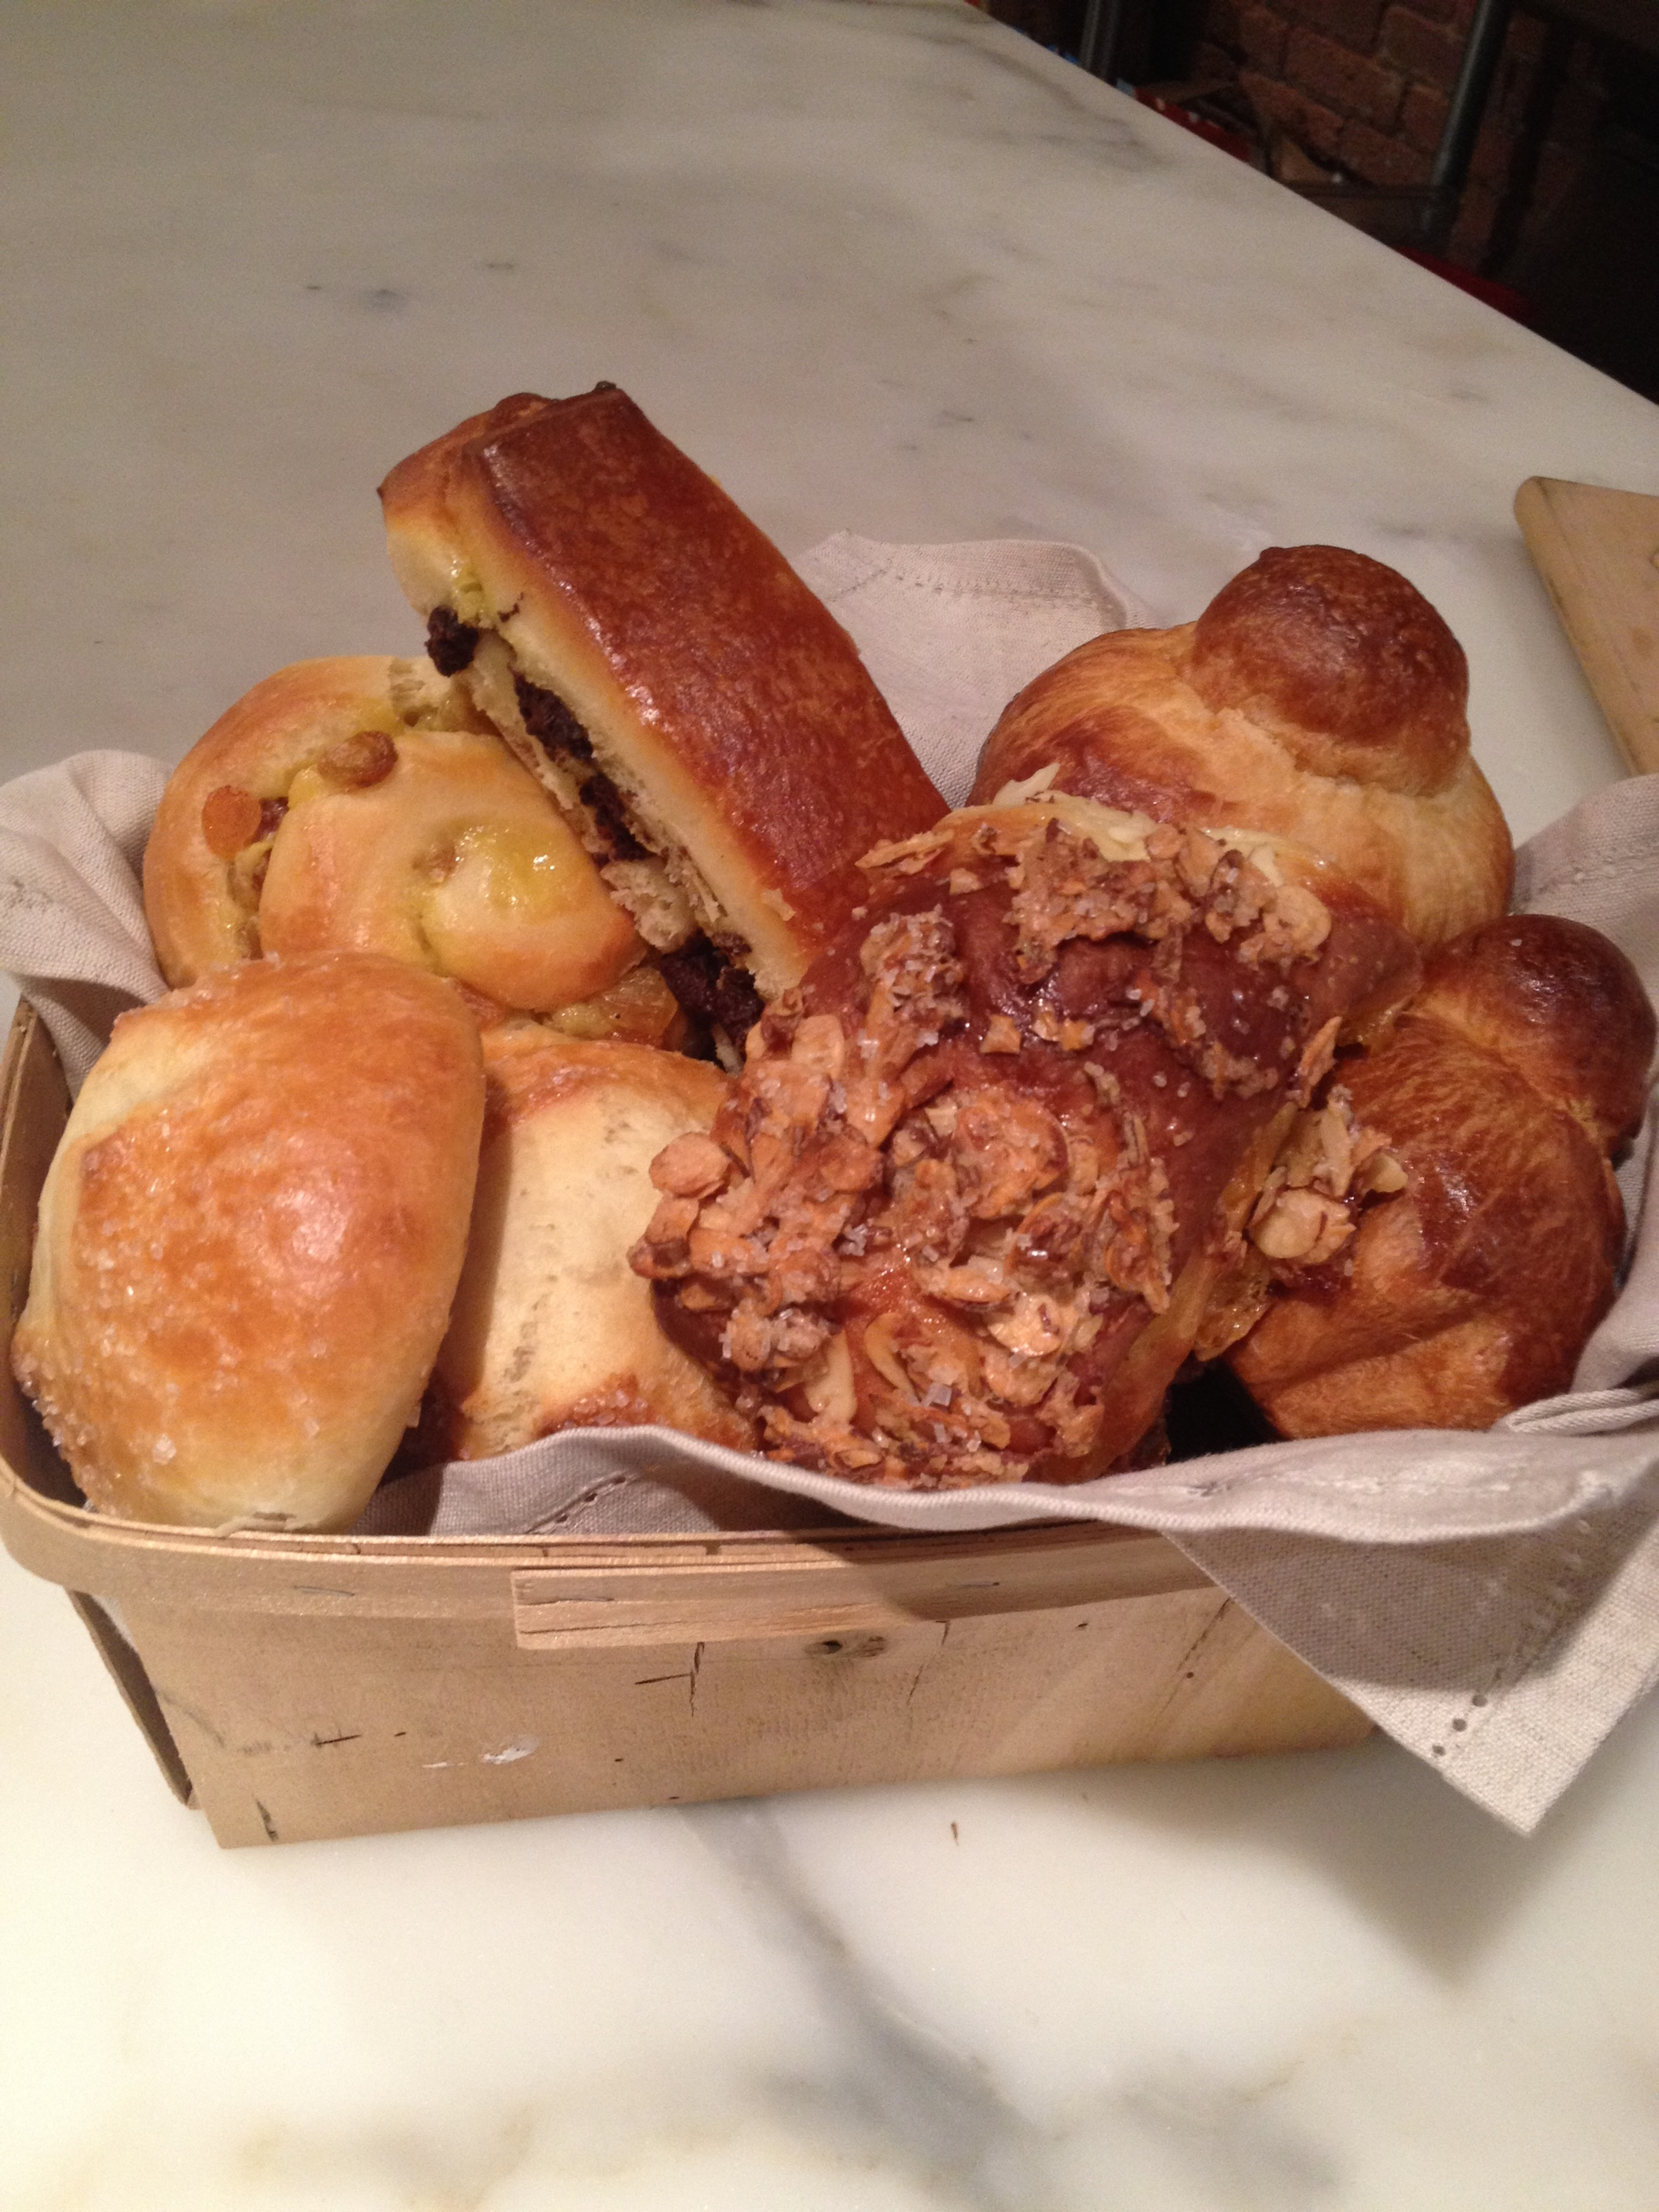 Basket of Brioche Buns